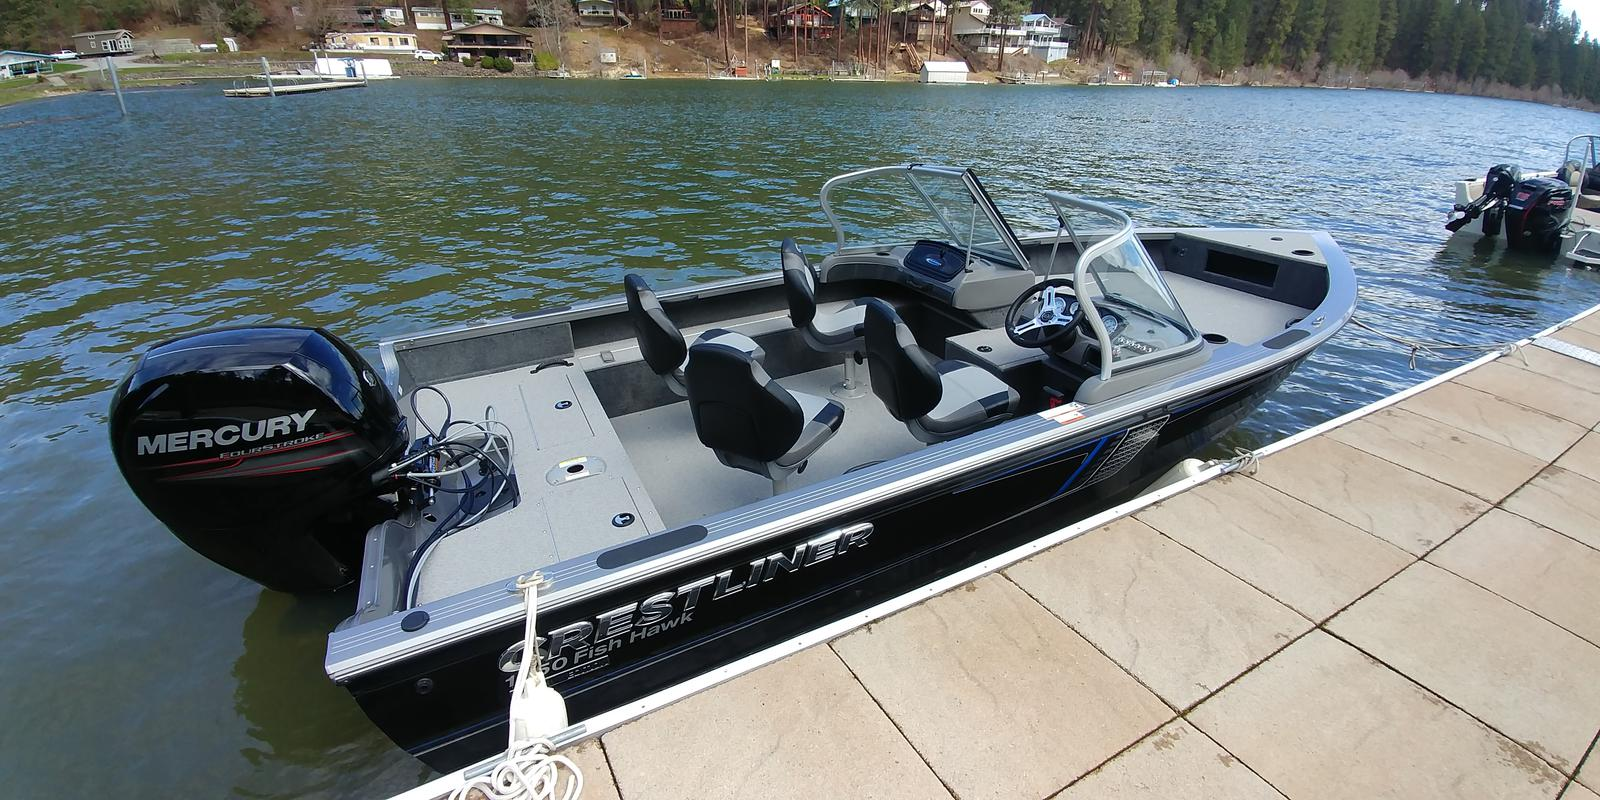 2018 CRESTLINER 1850 FISH HAWK WALK THROUGH for sale